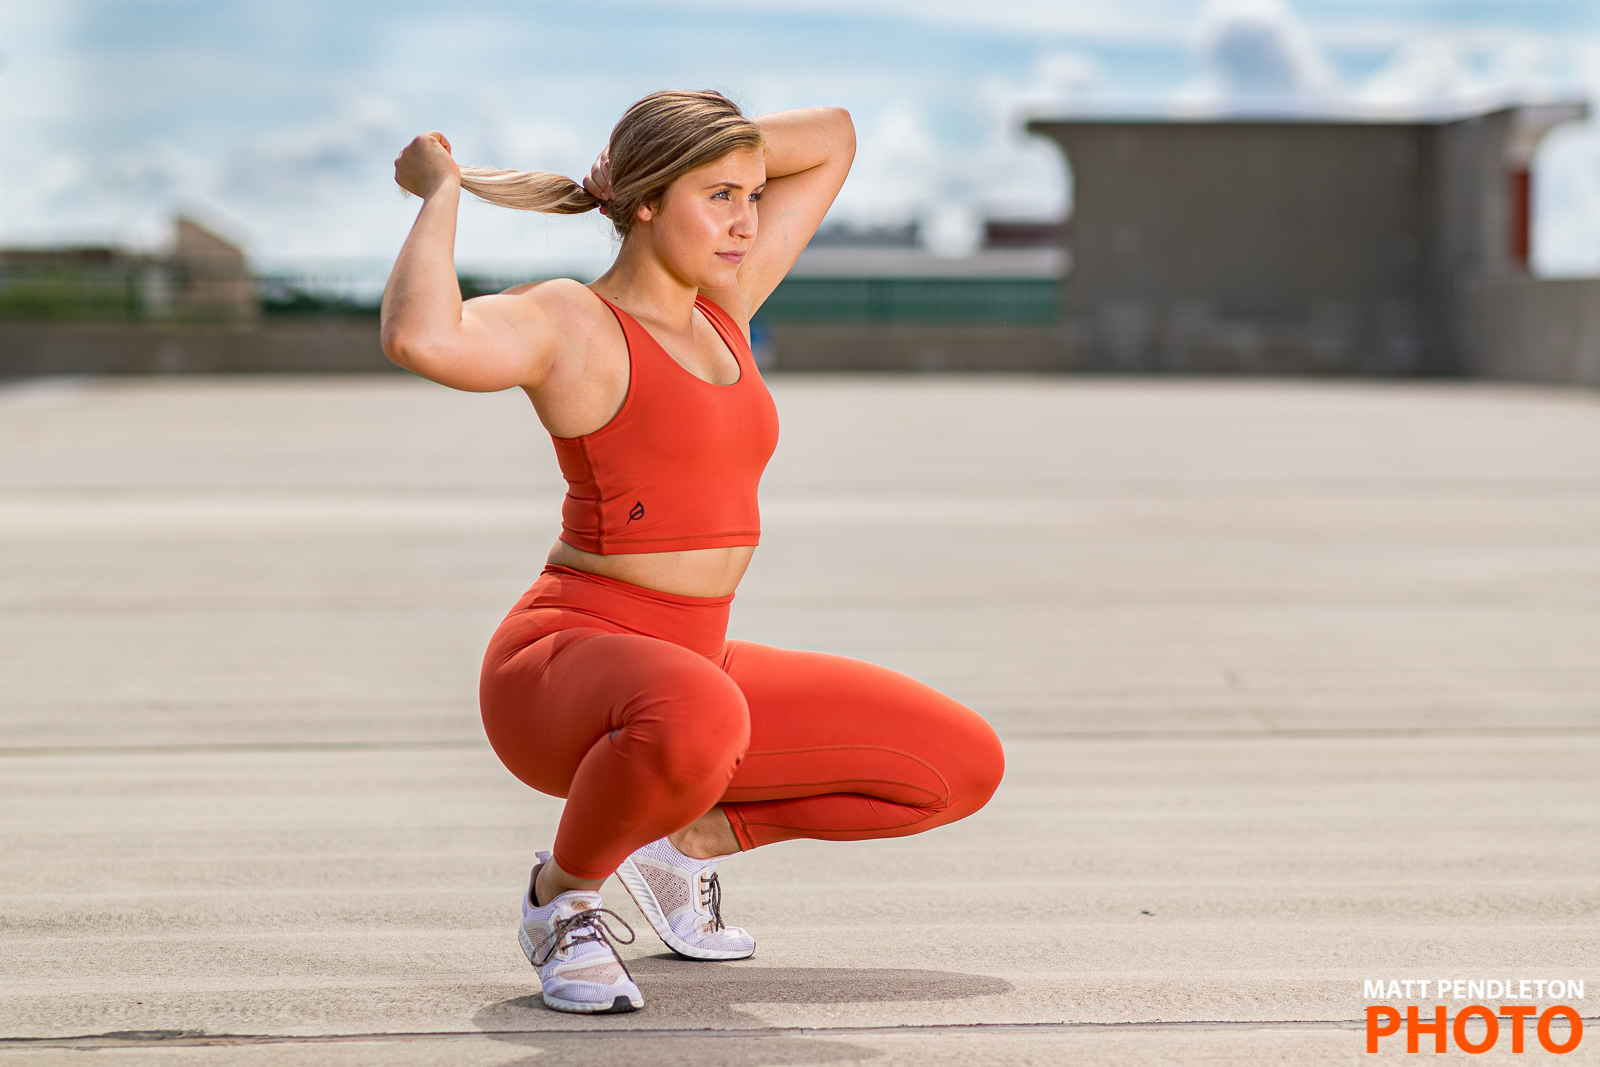 Fitness photo session with Emily Shaw on Sunday, June 30, 2019 at the Southwest Downtown Parking Garage in Gainesville, FL.